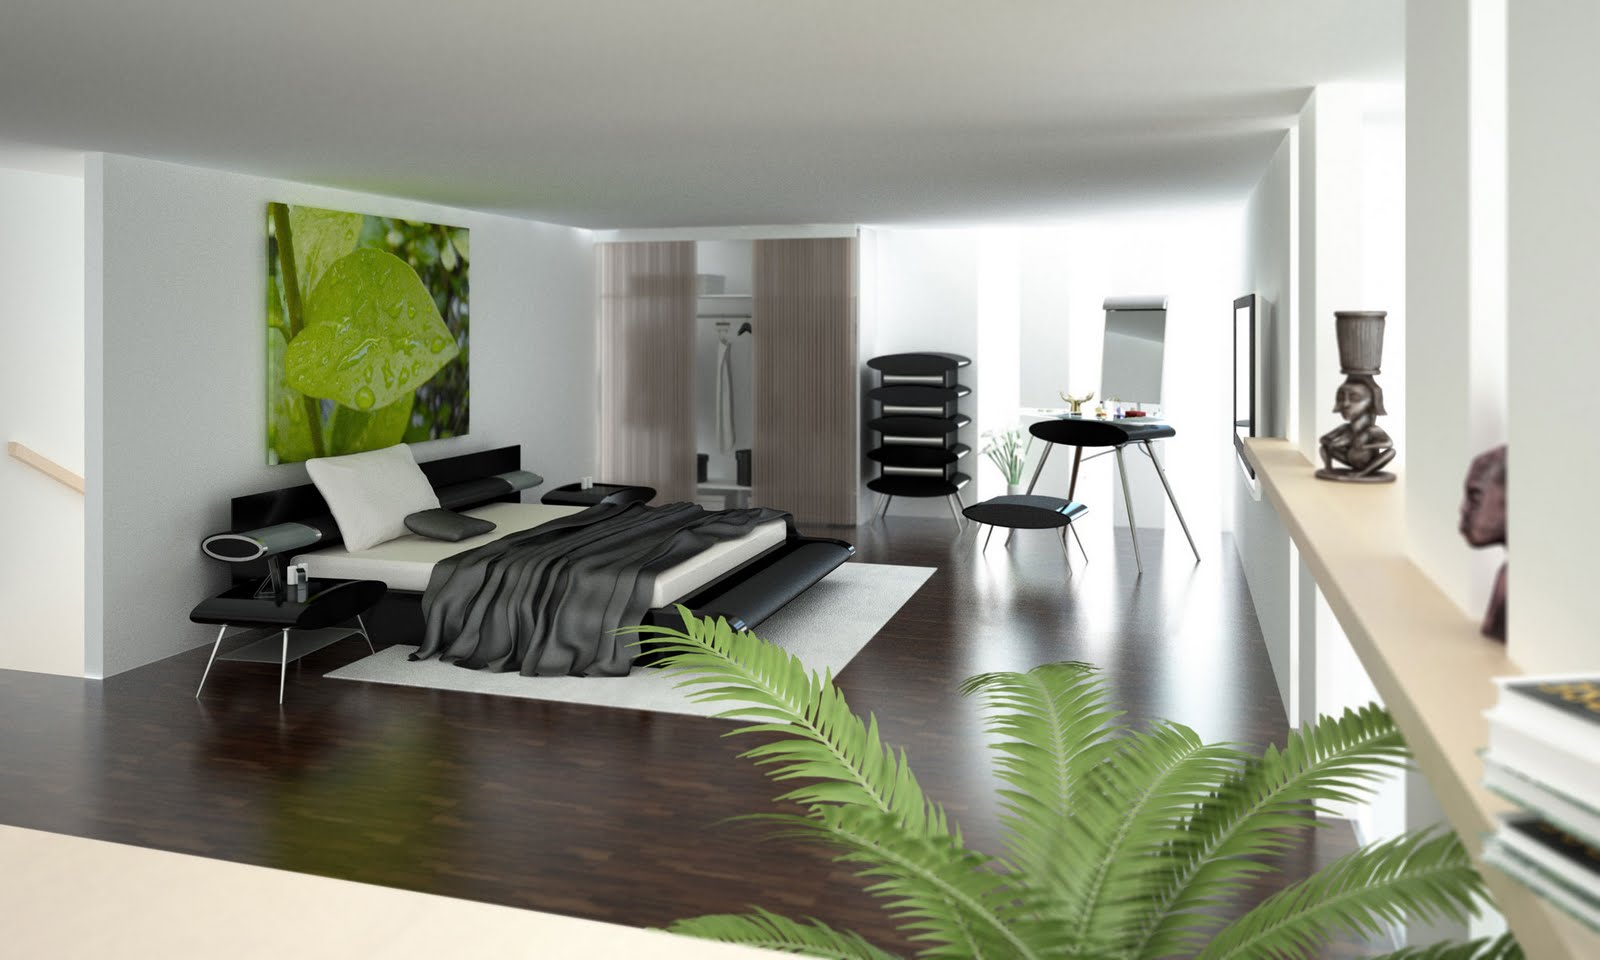 Design Classic Interior 2012: Modern and Elegant Bedrooms